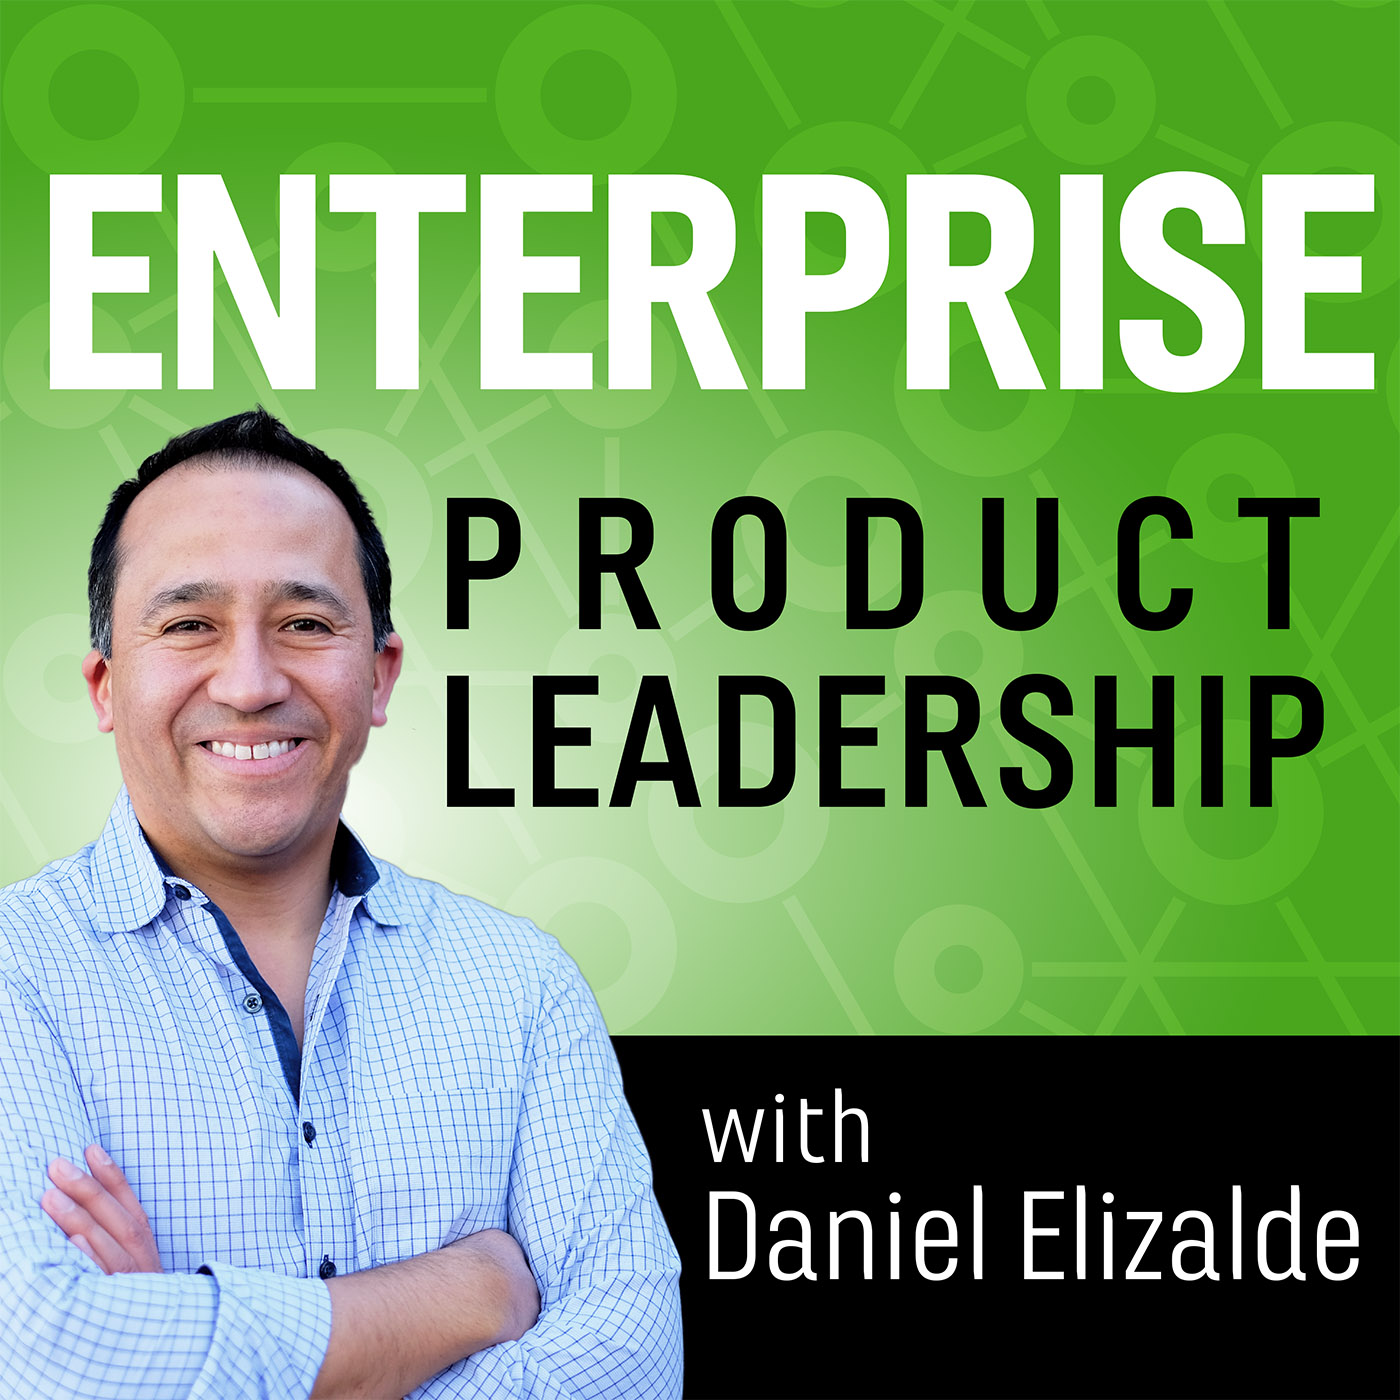 Enterprise Product Leadership